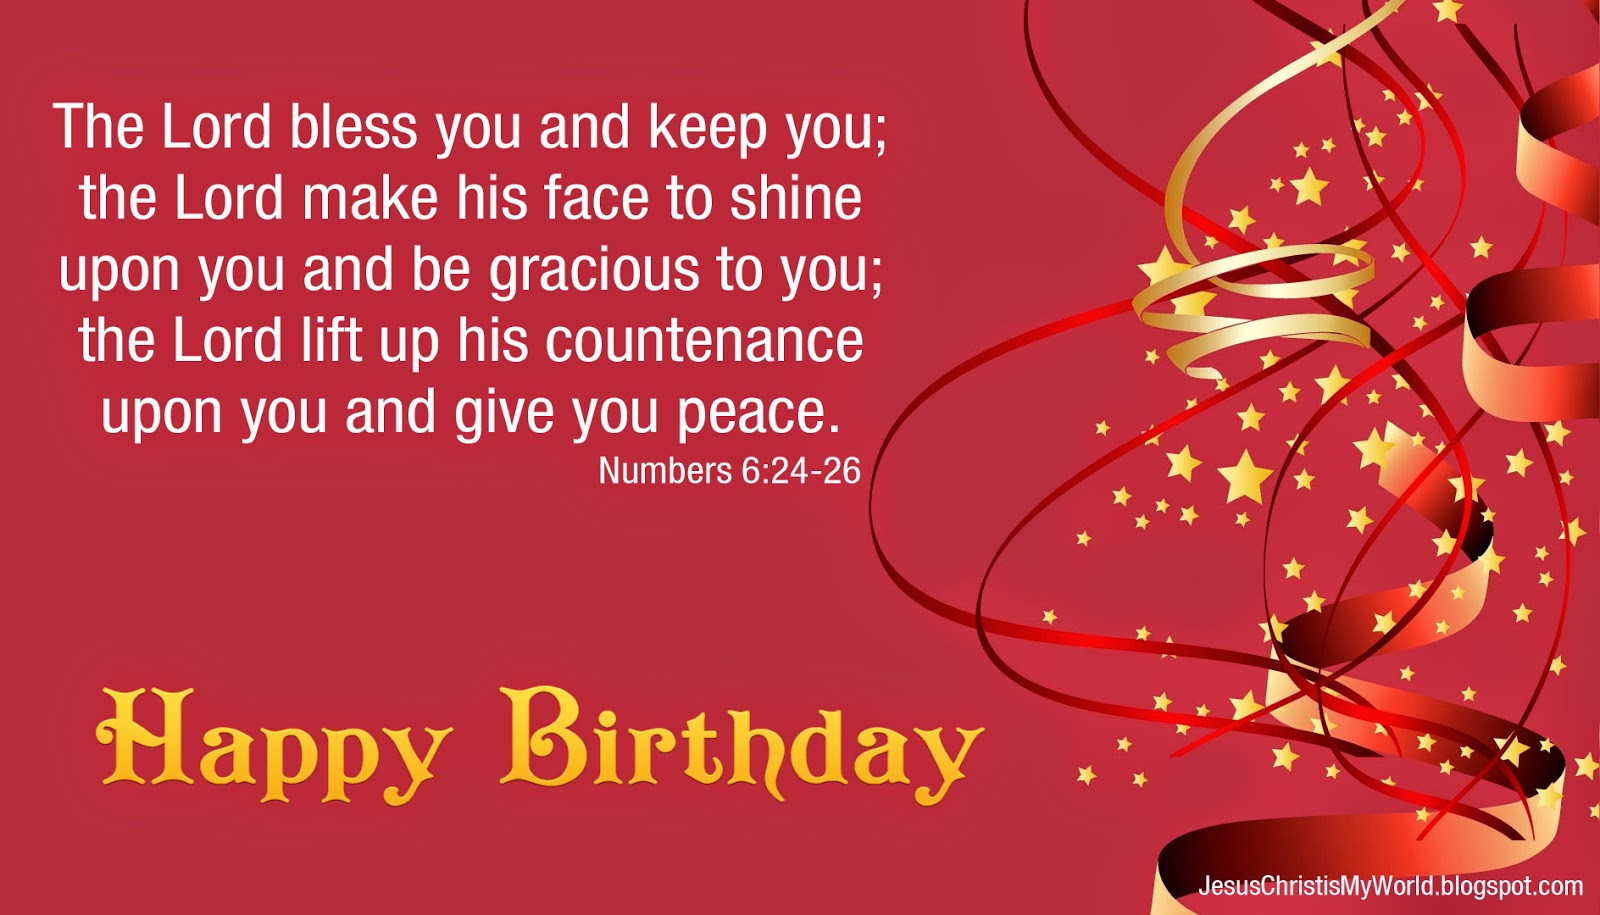 Best ideas about Happy Birthday Bible Quotes . Save or Pin Happy Birthday Bible Quotes QuotesGram Now.